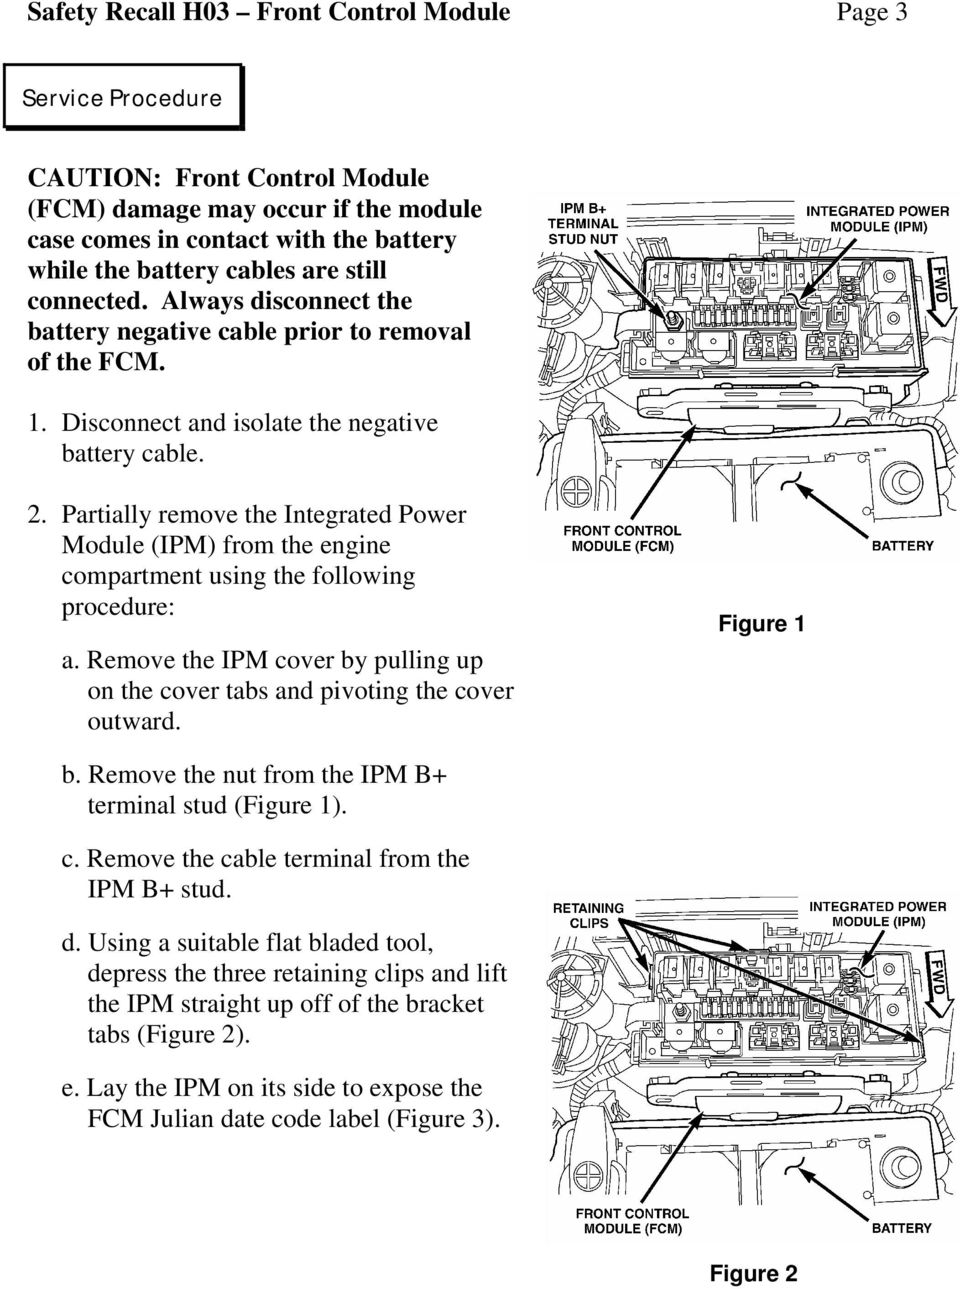 Partially remove the Integrated Power Module (IPM) from the engine compartment using the following procedure: a. Remove the IPM cover by pulling up on the cover tabs and pivoting the cover outward.